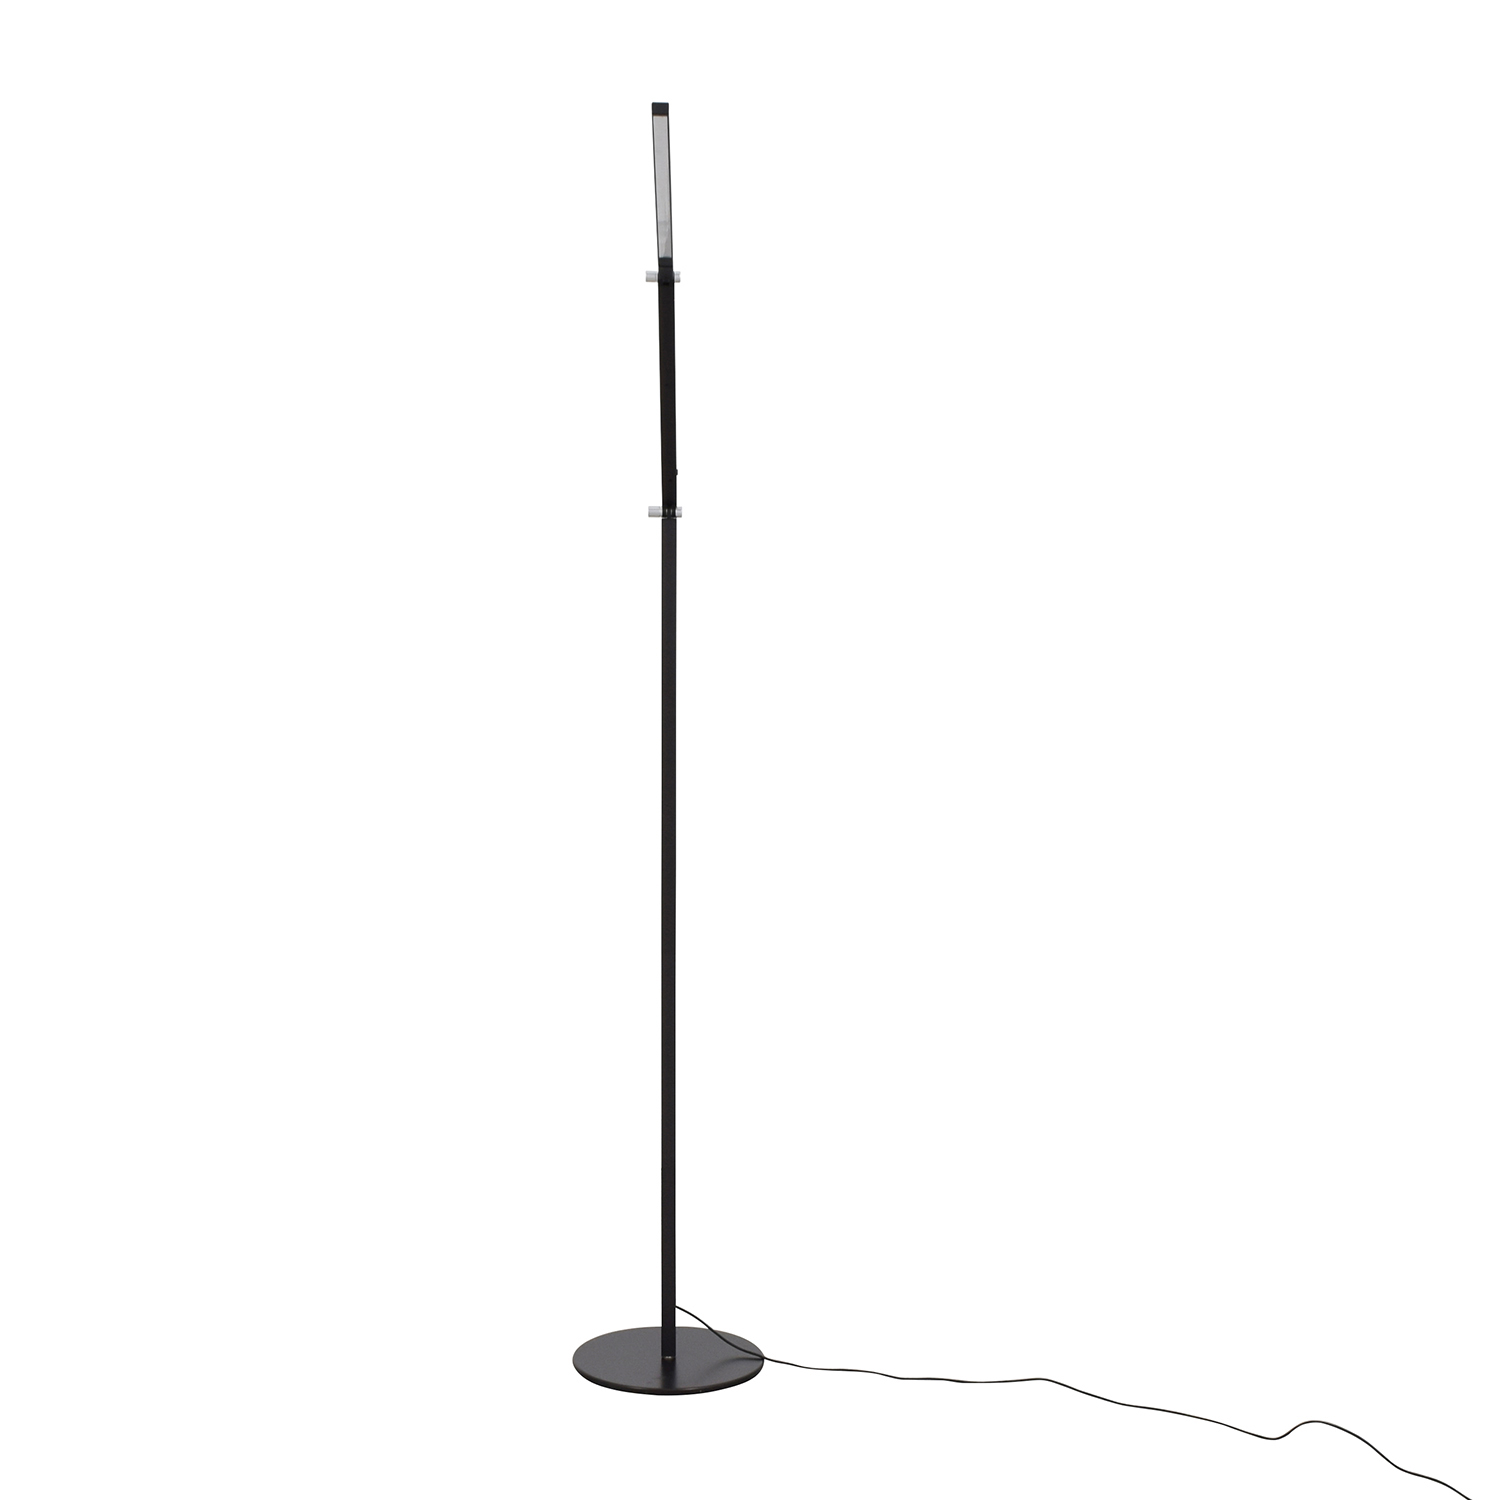 76 off koncept koncept gen 3 z bar warm light led modern floor shop koncept koncept gen 3 z bar warm light led modern floor lamp black online aloadofball Gallery